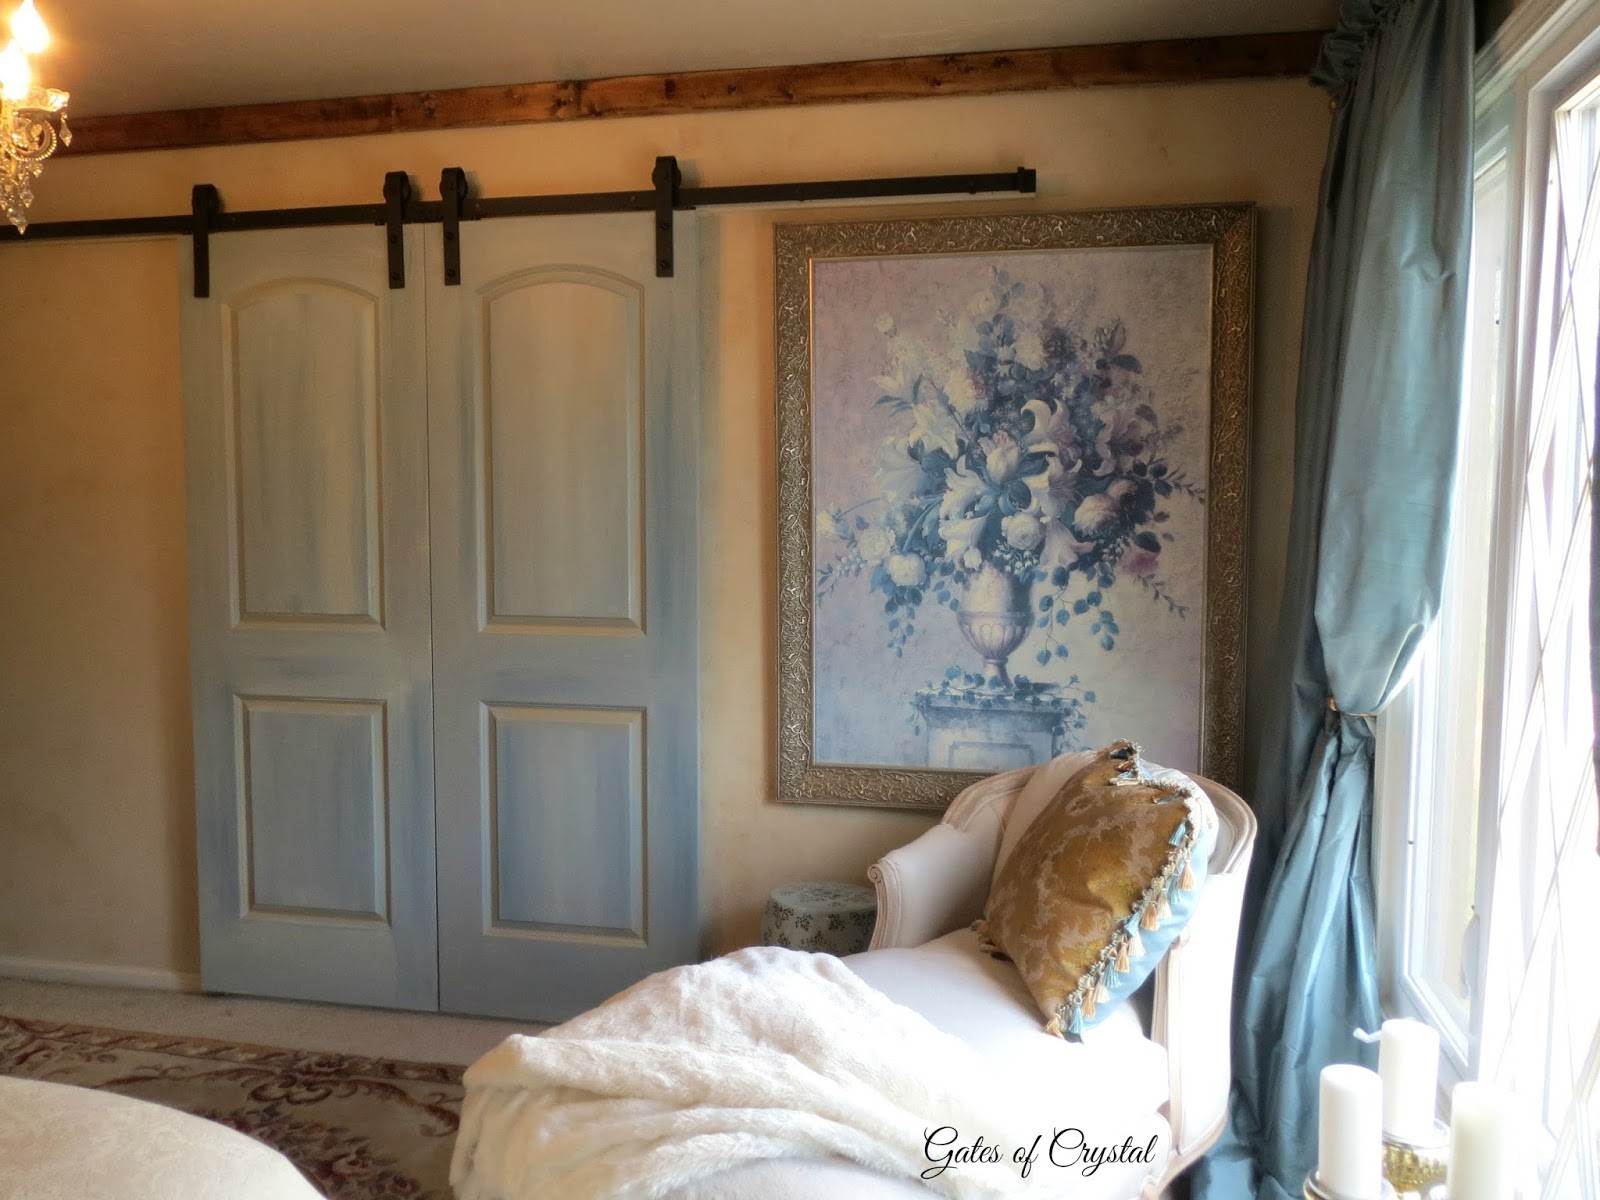 Gates Of Crystal: A New Barn Door In The Master Bedroom